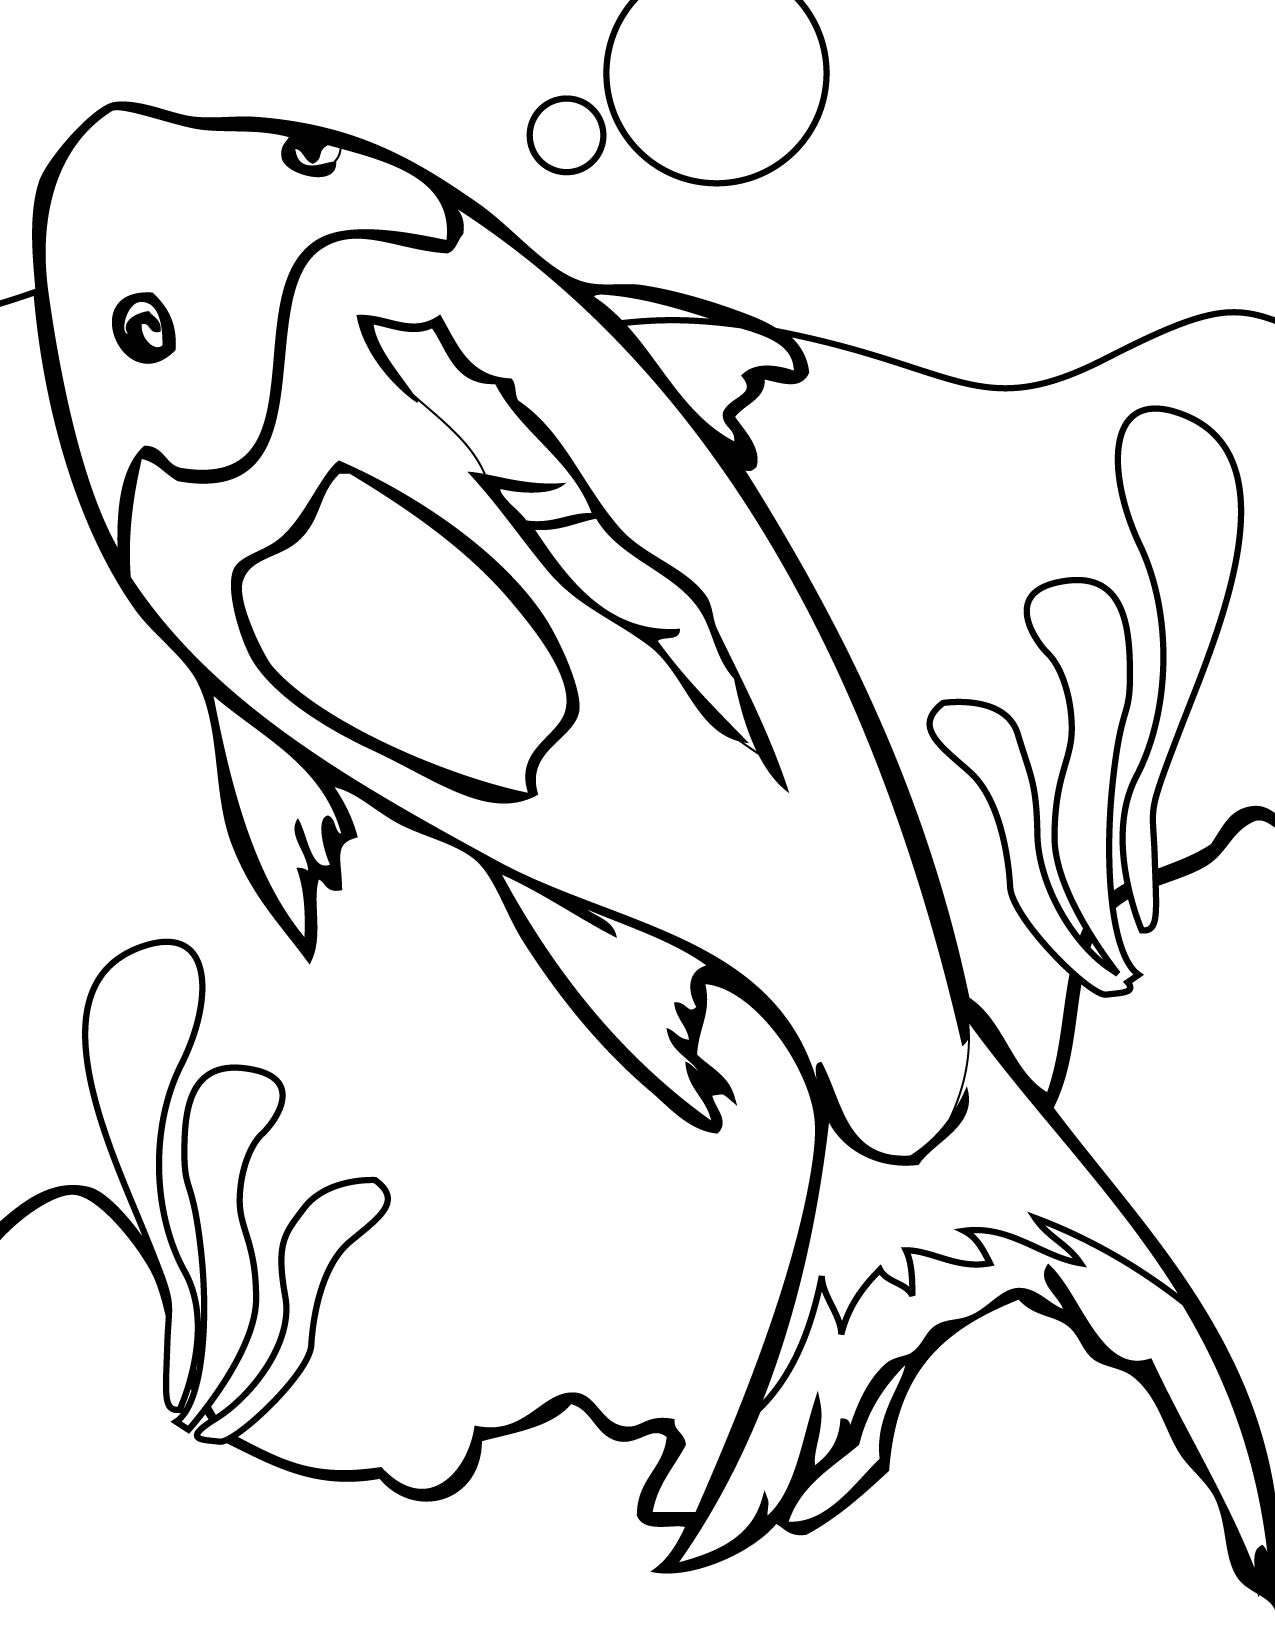 Coral Reef Coloring Book Page Sketch Coloring Page